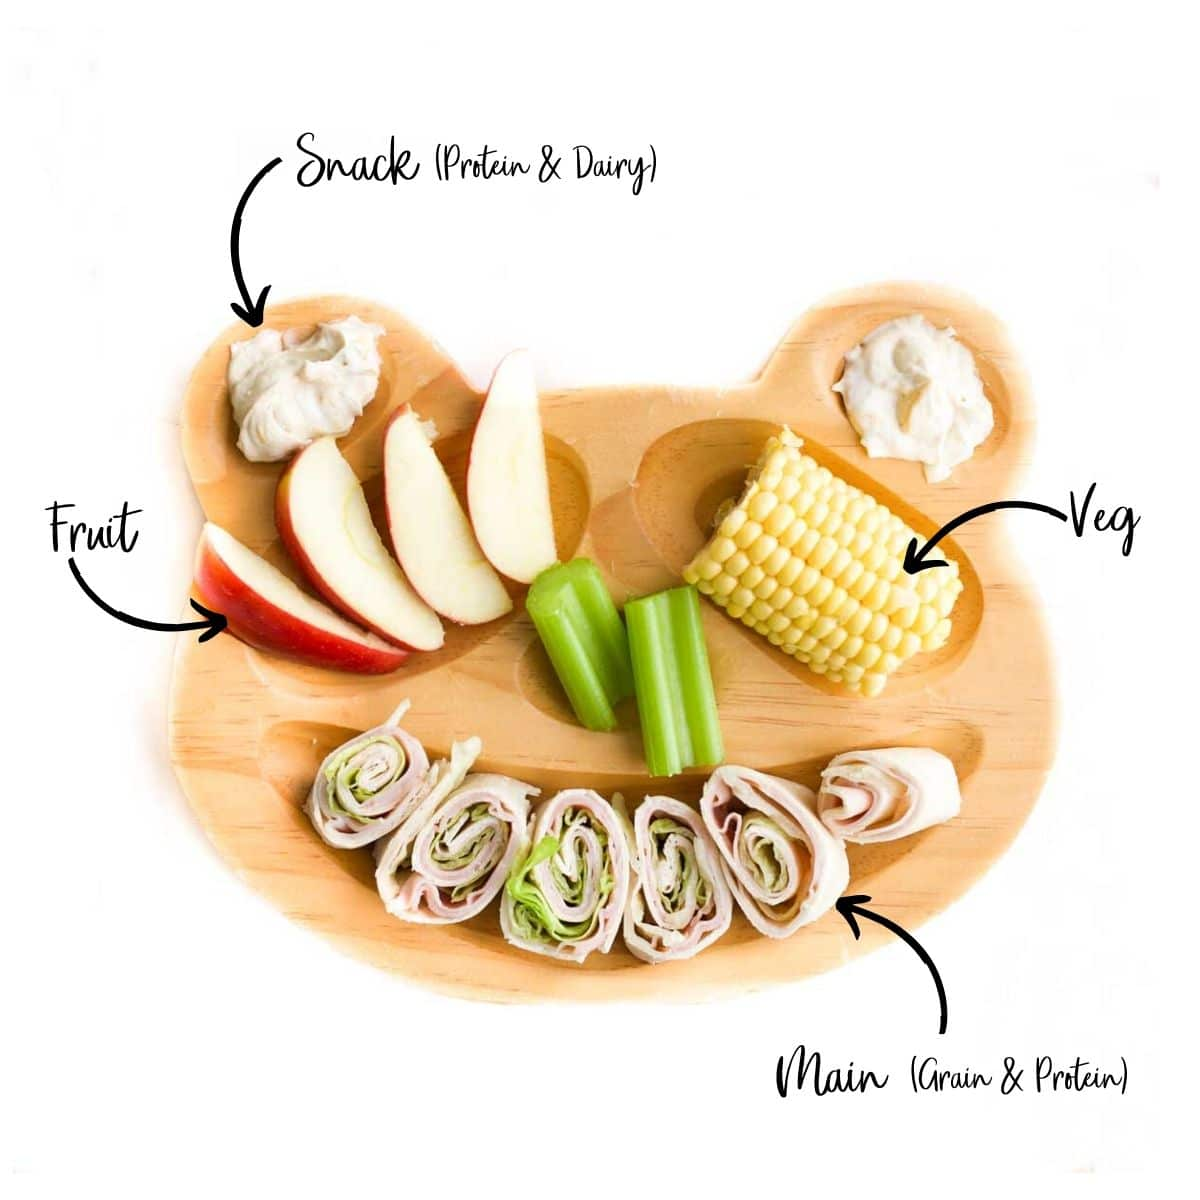 Lunch on a Plate with the Different Components Labelled